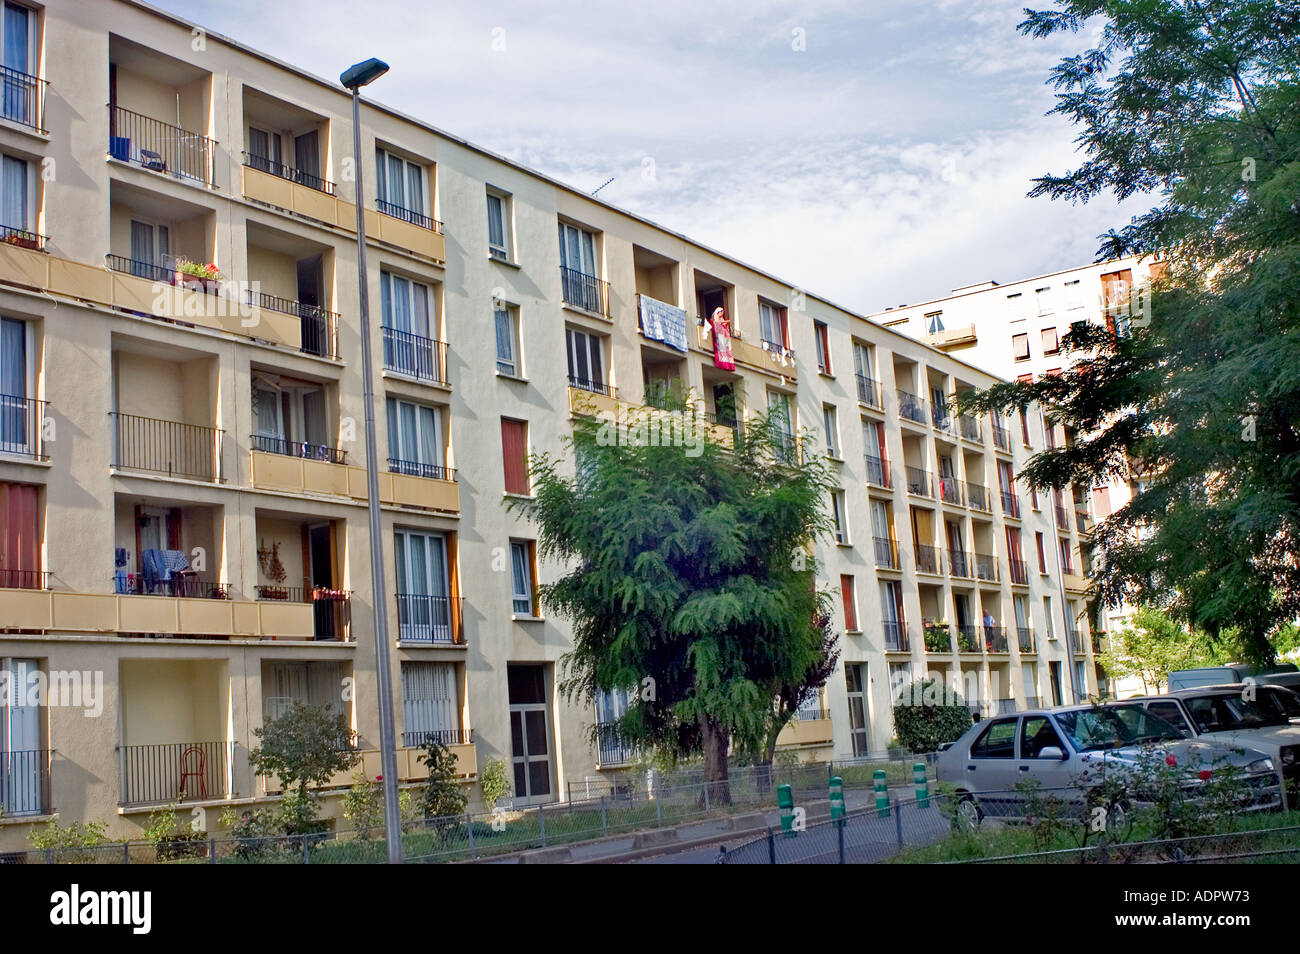 Hlm Apartments Stock Photos Hlm Apartments Stock Images Alamy